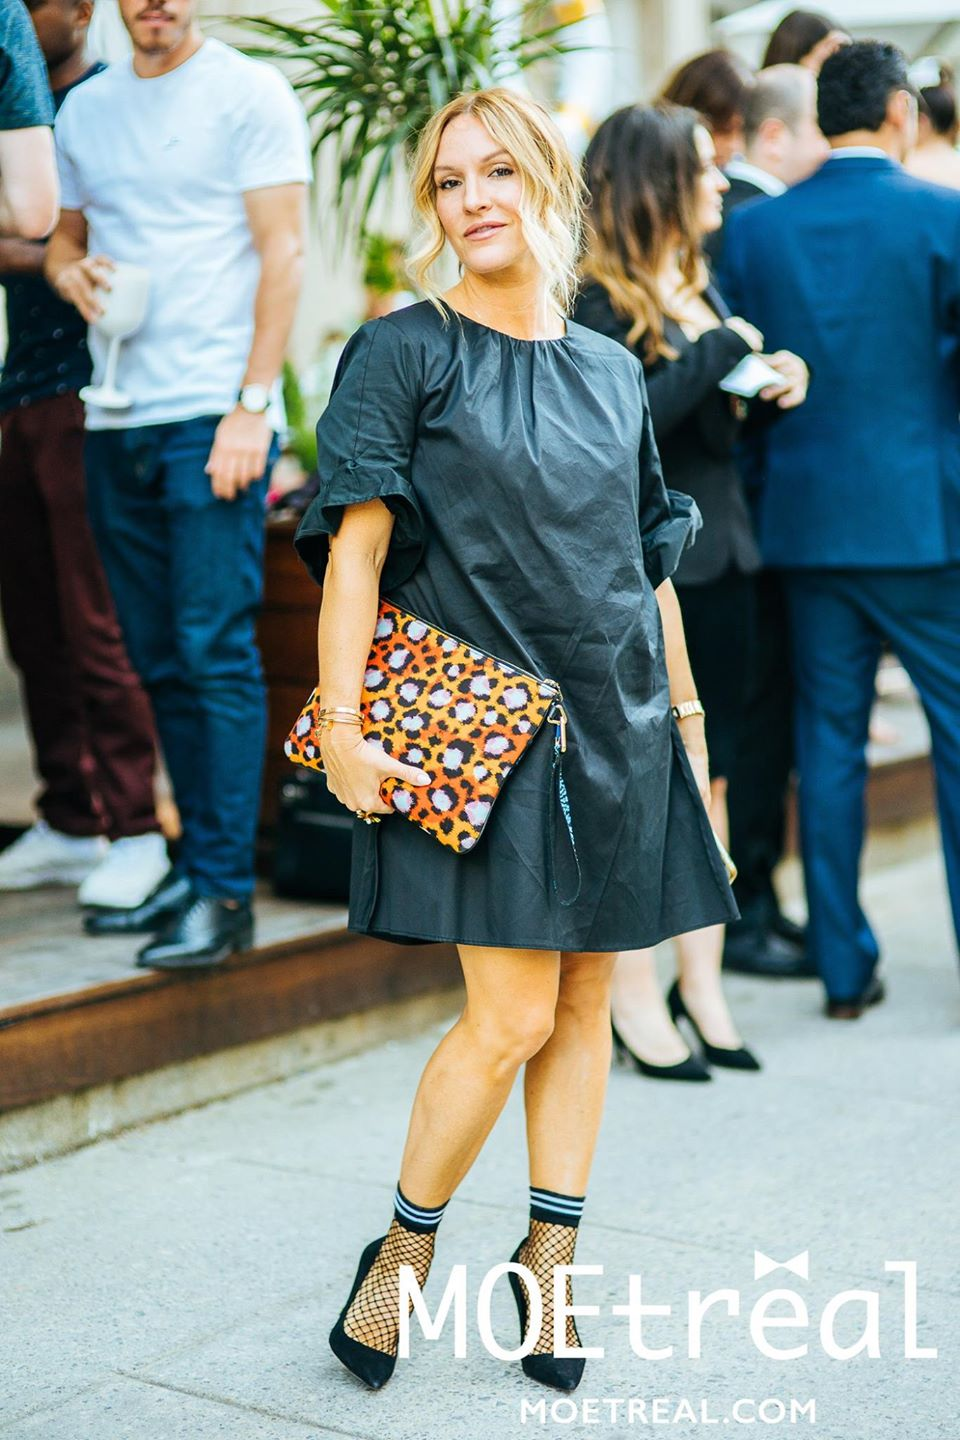 mlle mademoiselle jules montreal blogger lifestyle